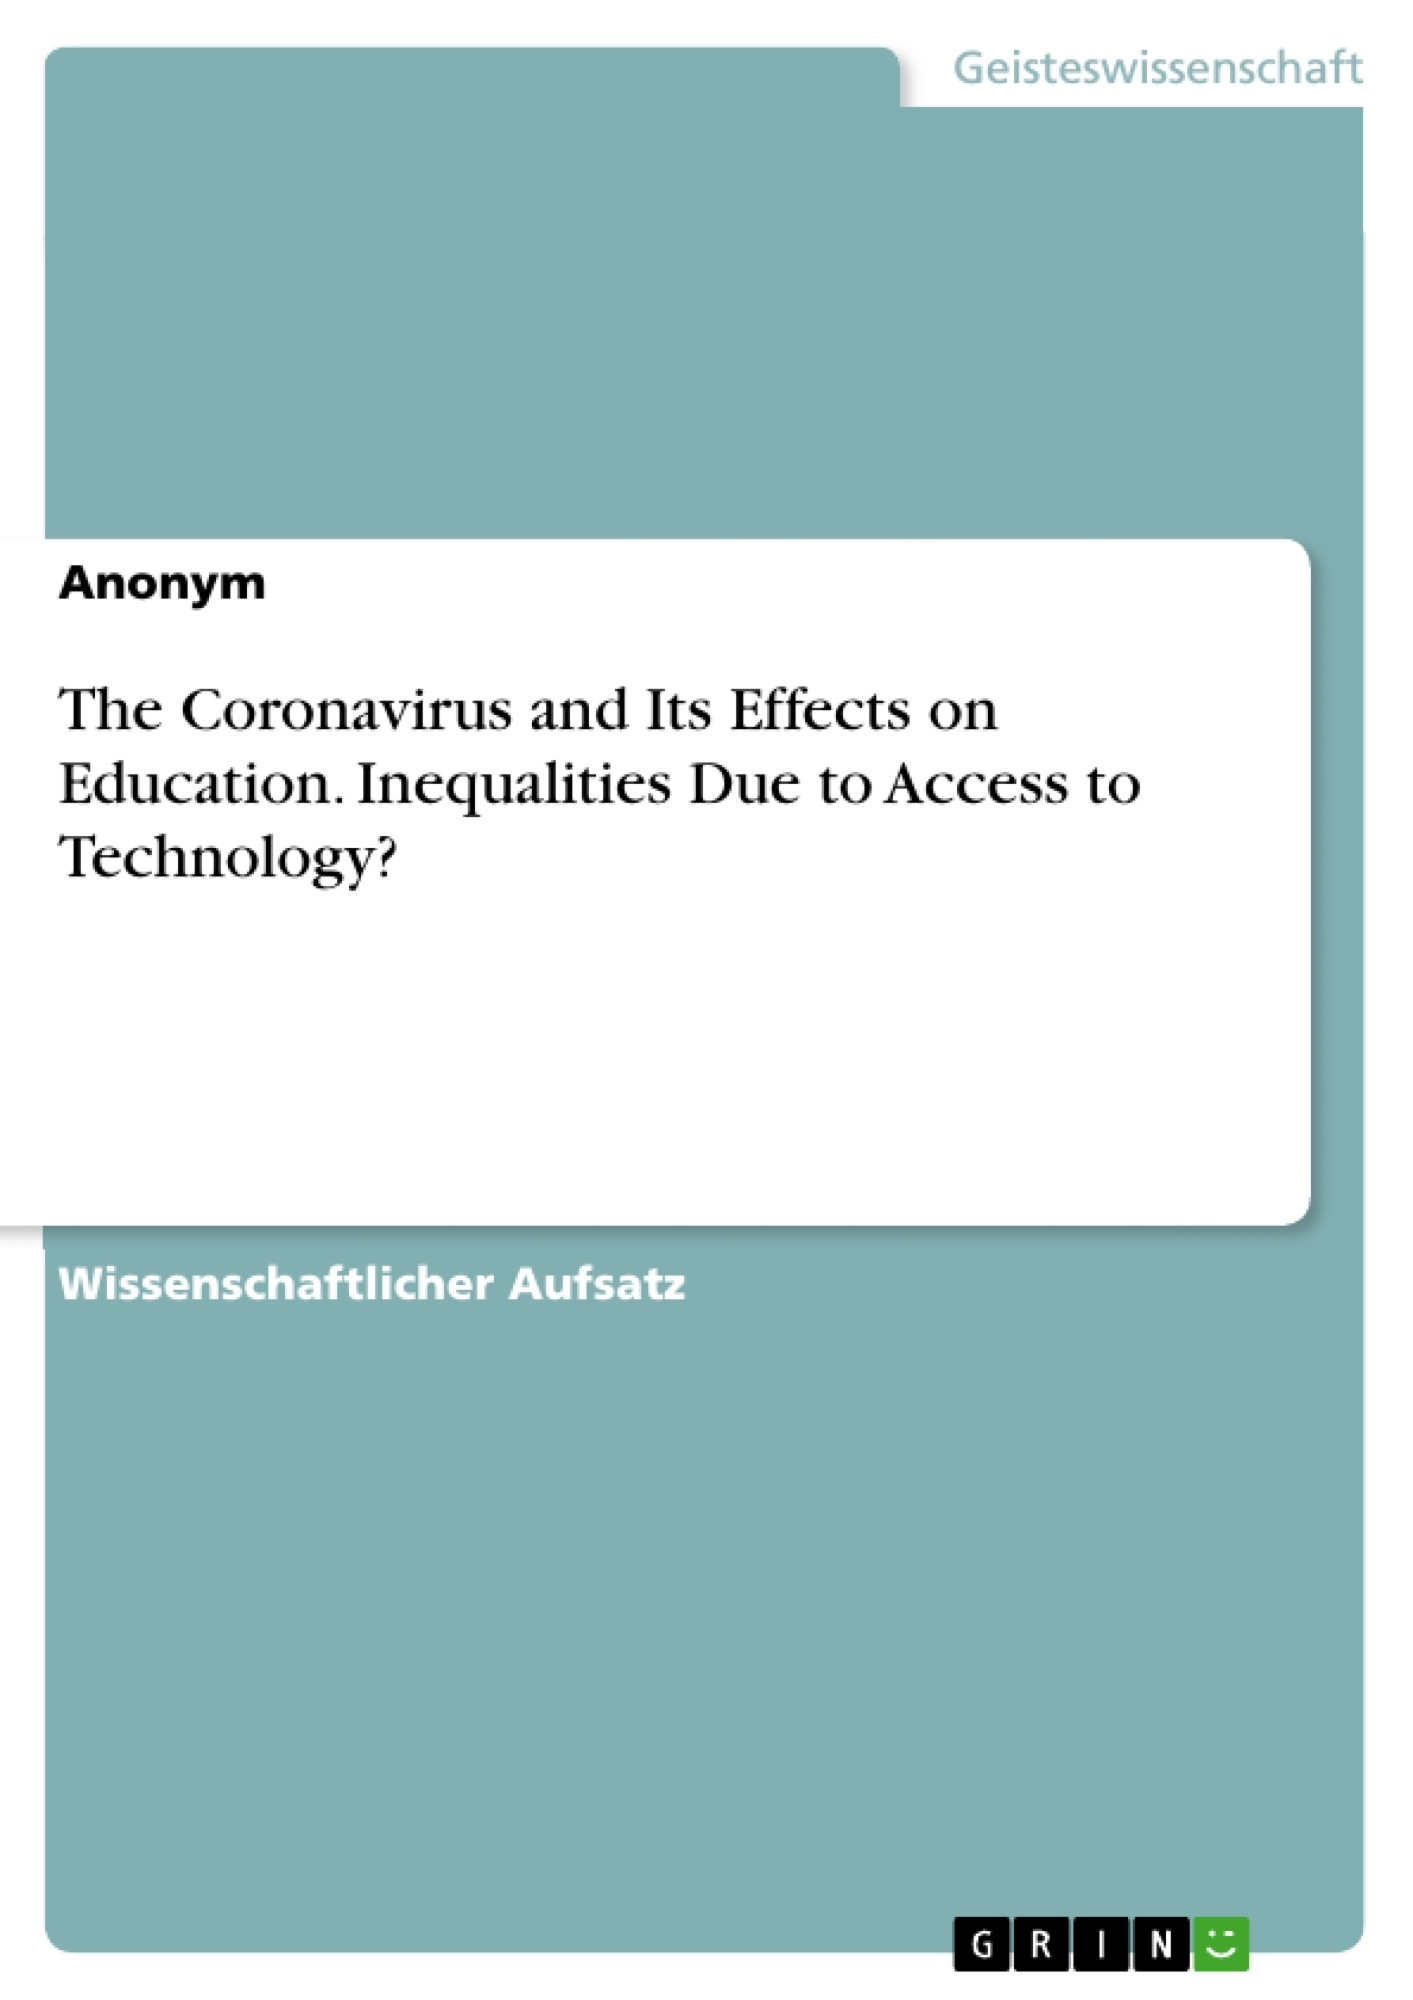 Titel: The Coronavirus and Its Effects on Education. Inequalities Due to Access to Technology?